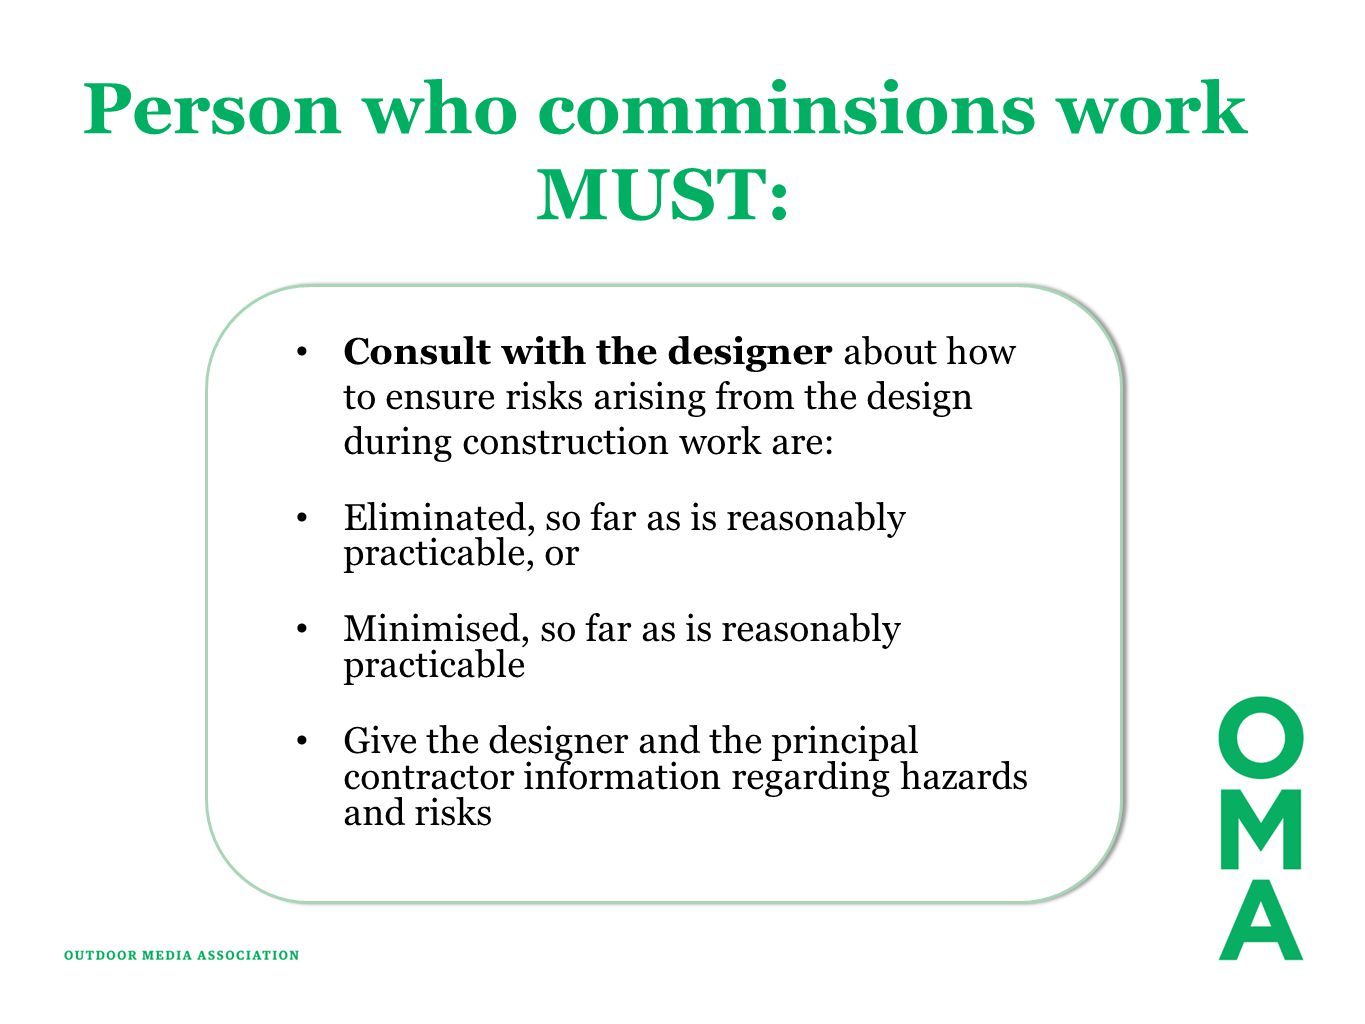 Person who comminsions work MUST: Consult with the designer about how to ensure risks arising from the design during construction work are: Eliminated